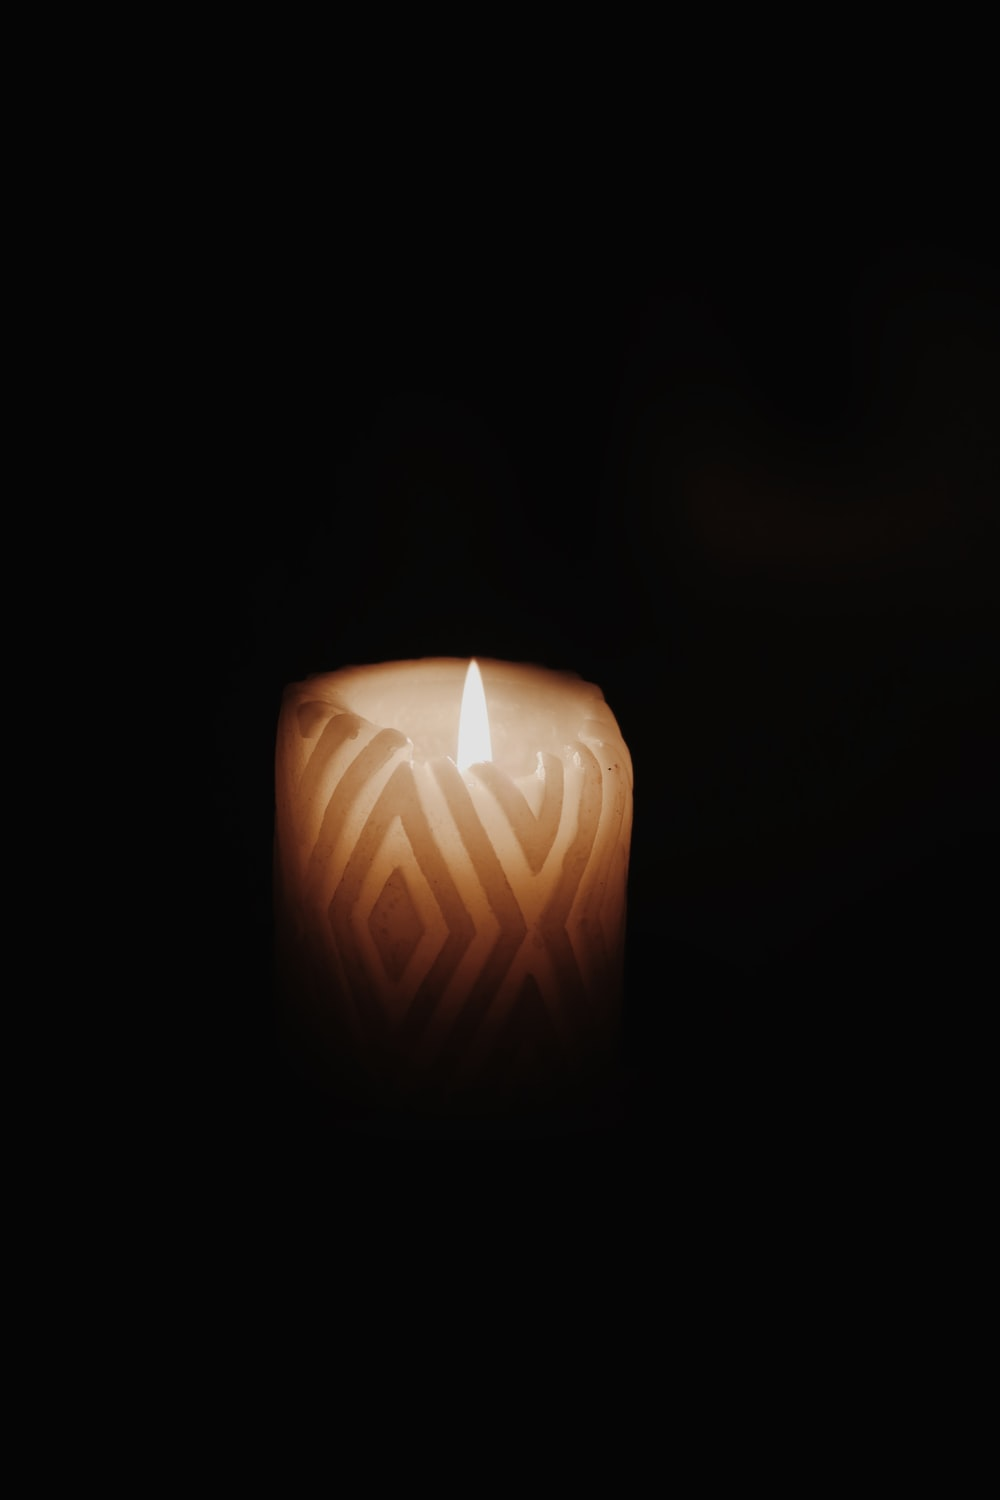 lighted candle in dark room